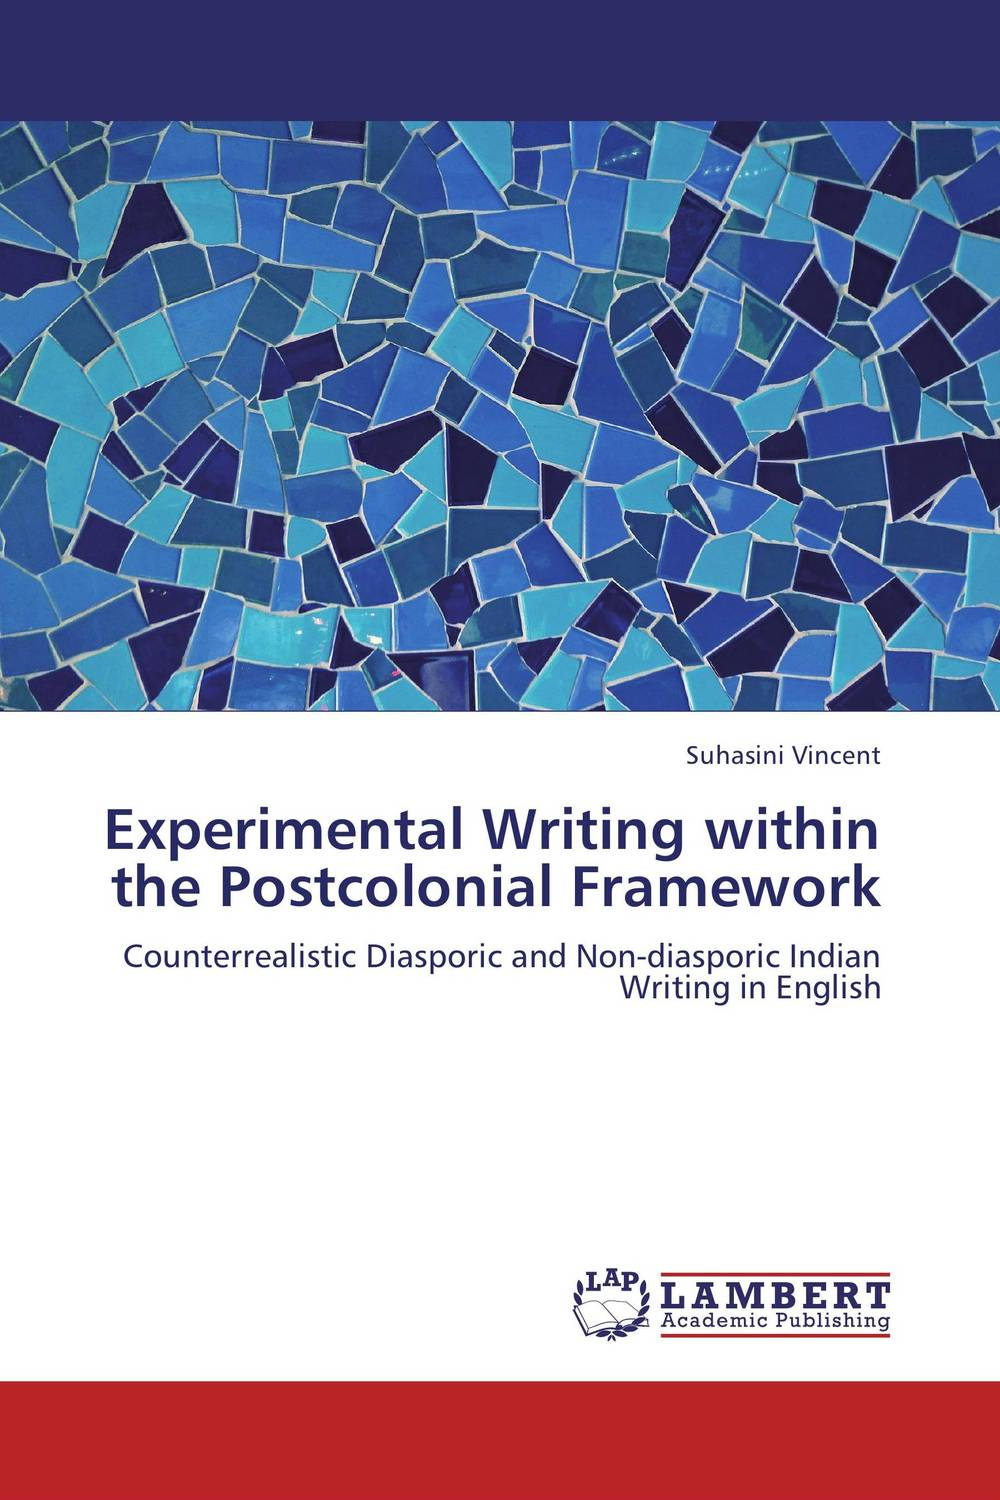 Experimental Writing within the Postcolonial Framework the role of absurdity within english humour